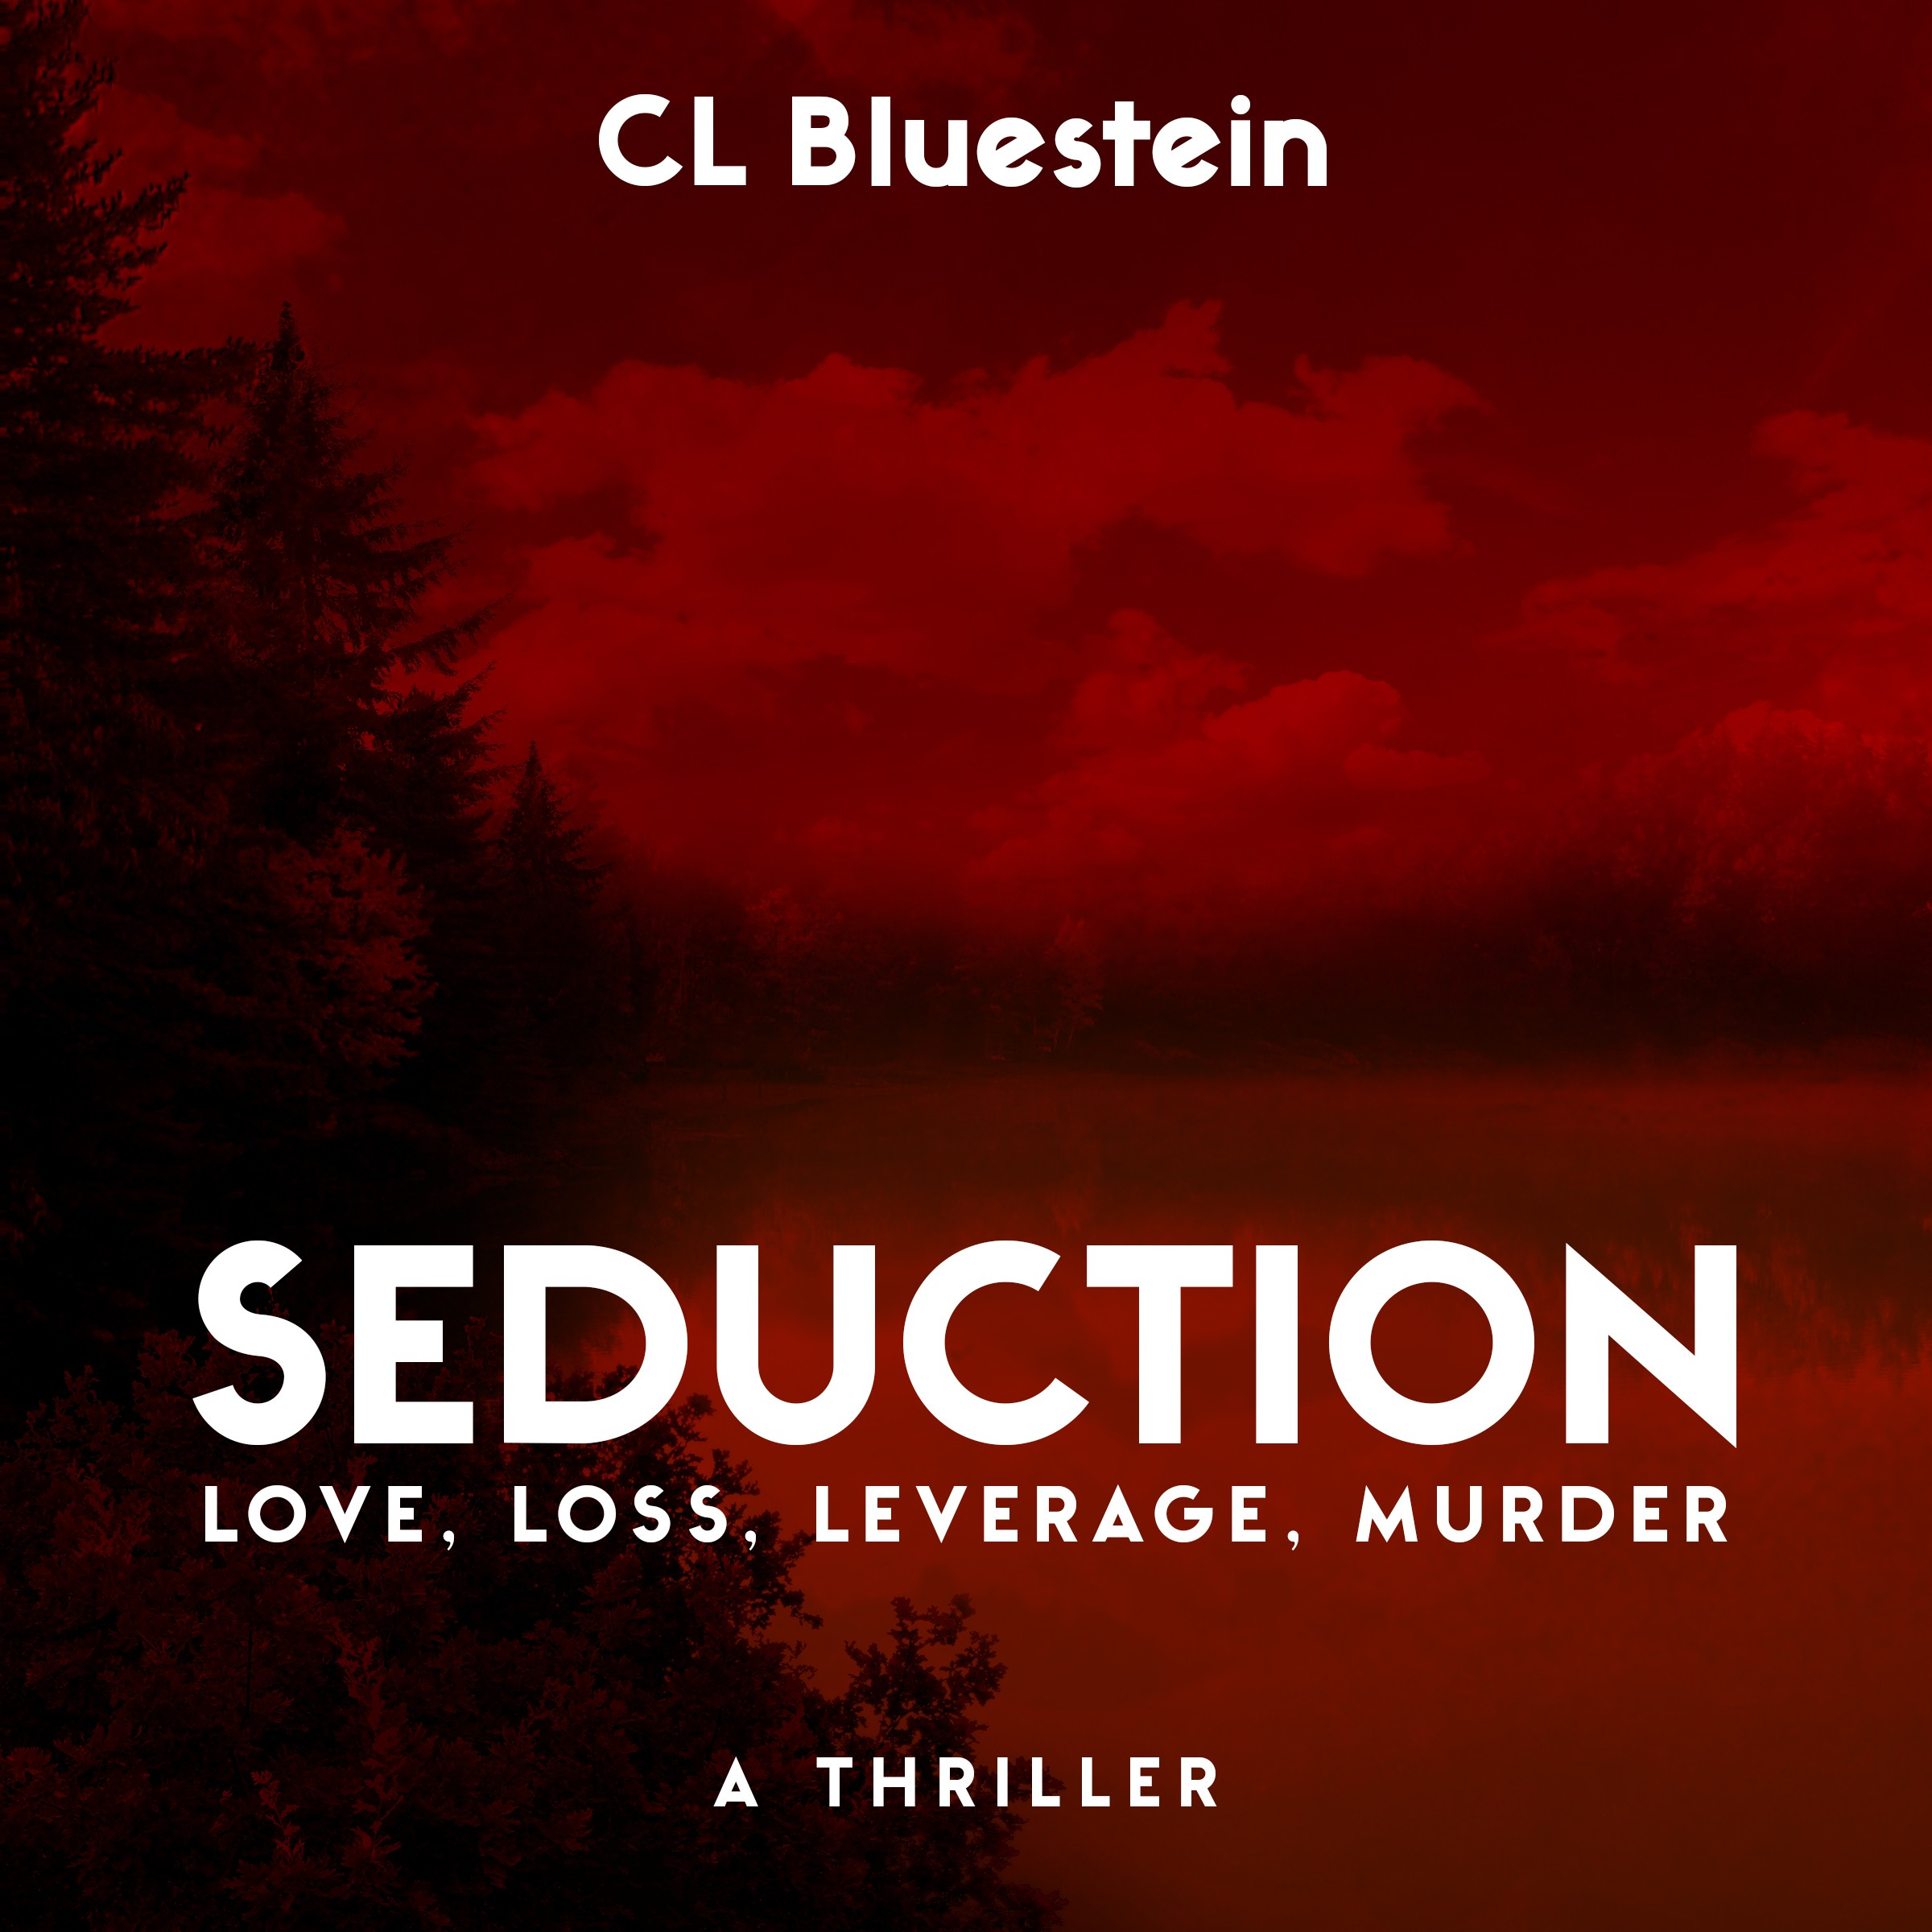 Seduction: Love, Loss, Leverage, Murder (Audiobook Cover)